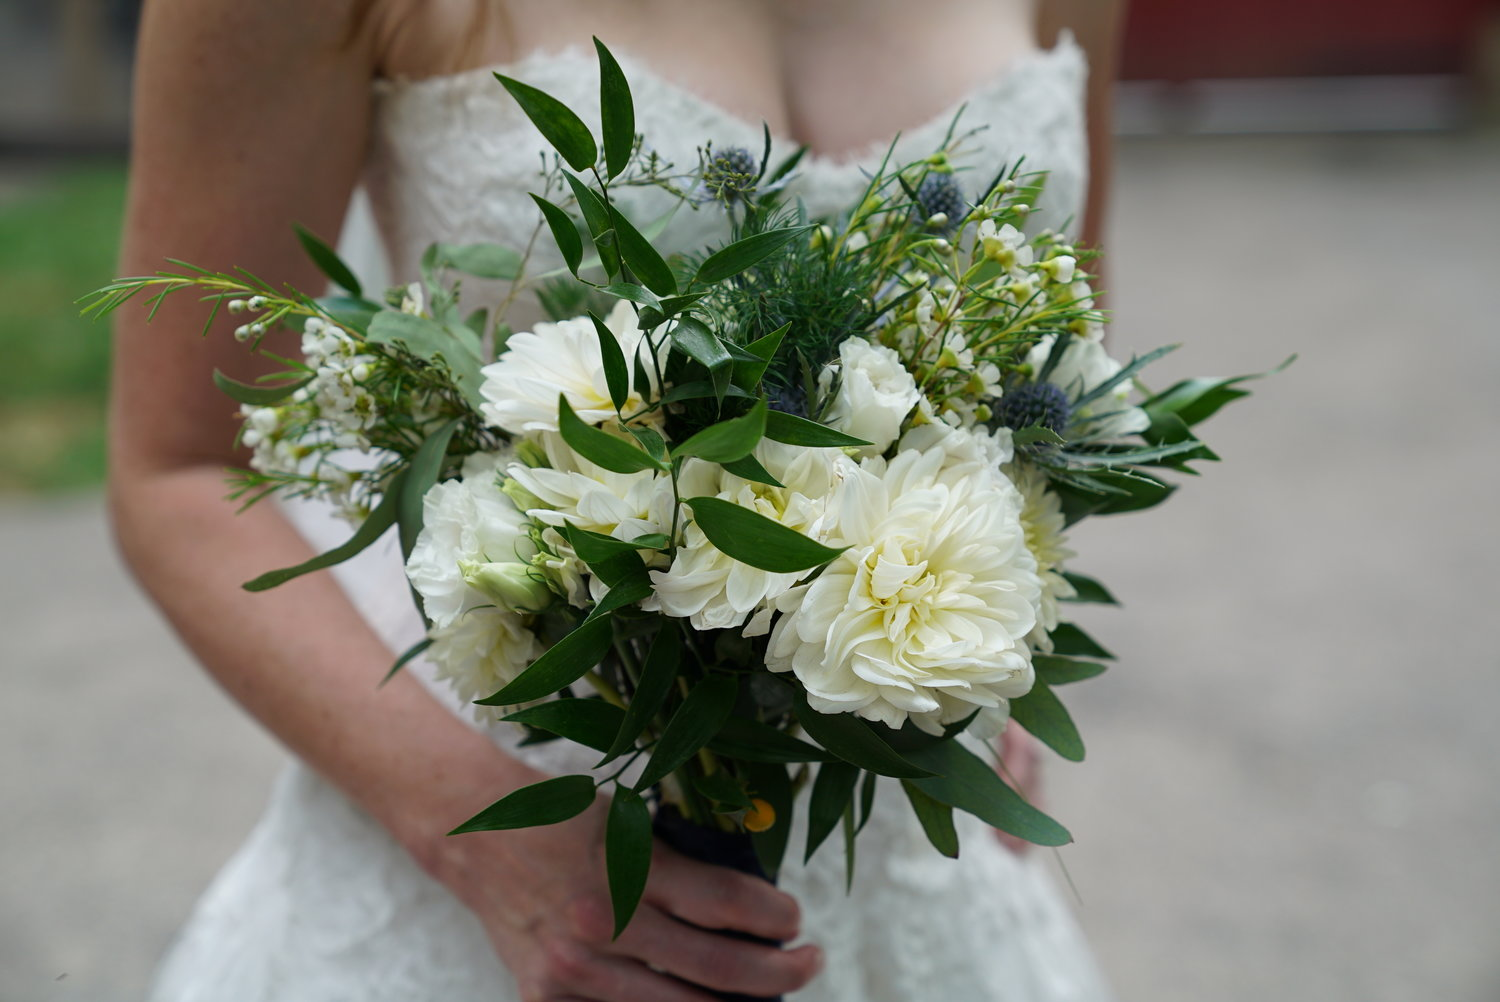 Its Always Hard To Stop Adding Flowers Into A Bouquet But With The Bride Being